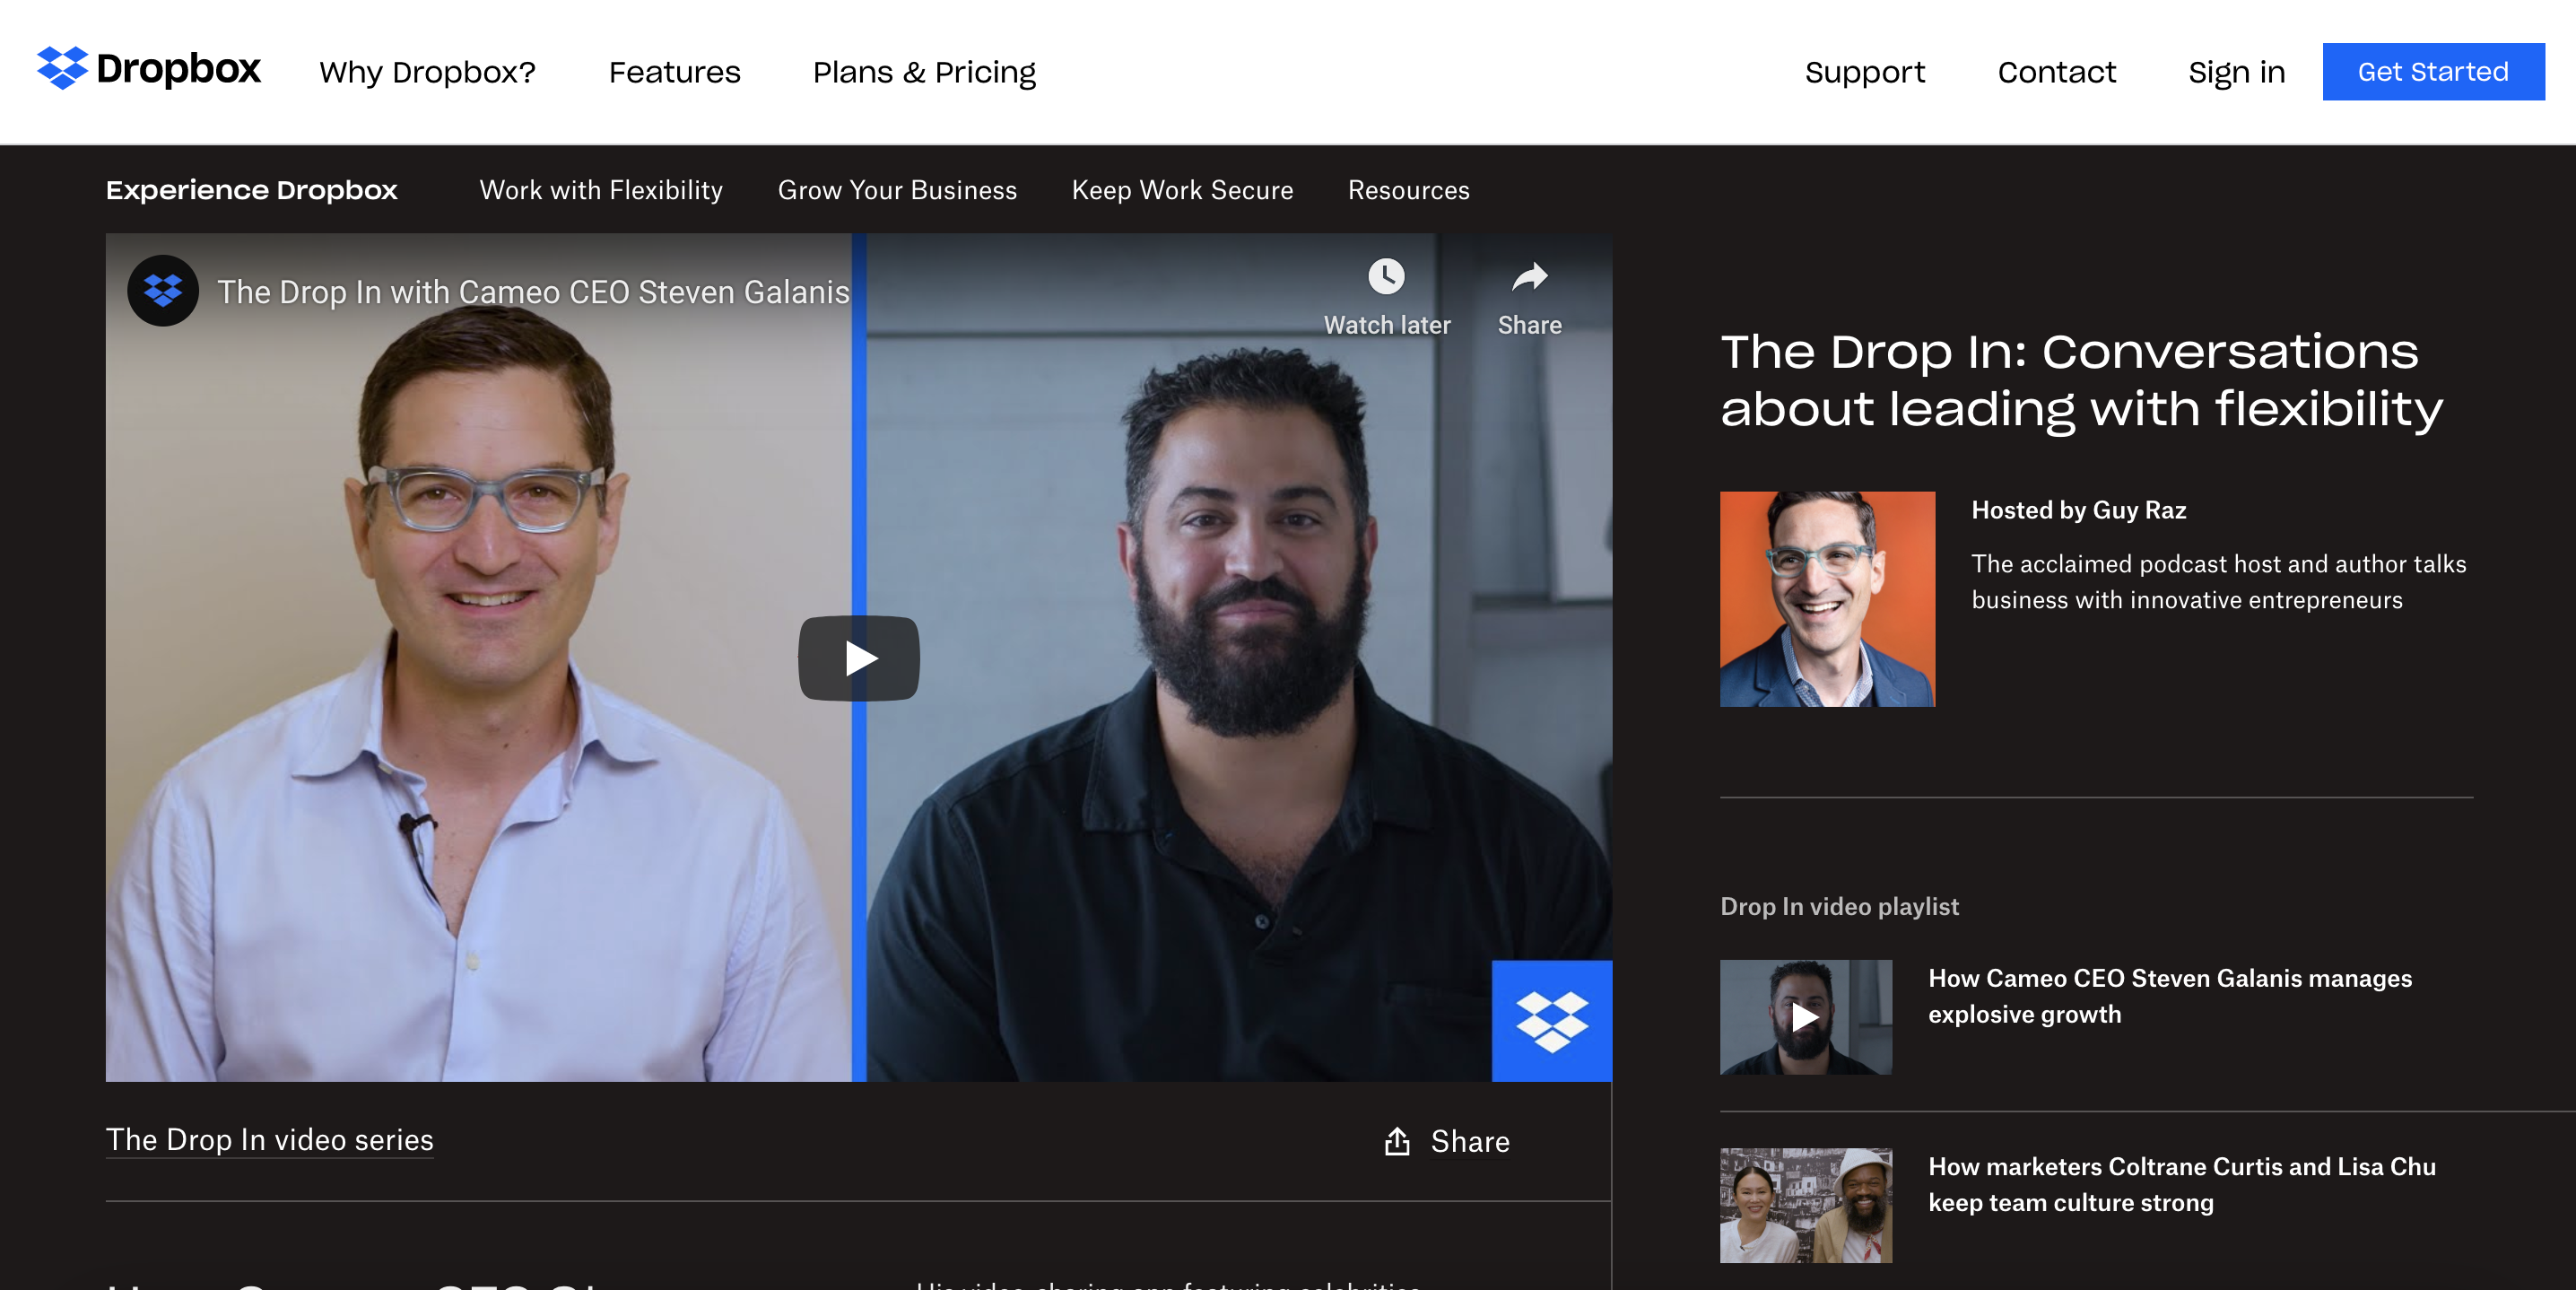 Branded content by Dropbox and Cameo